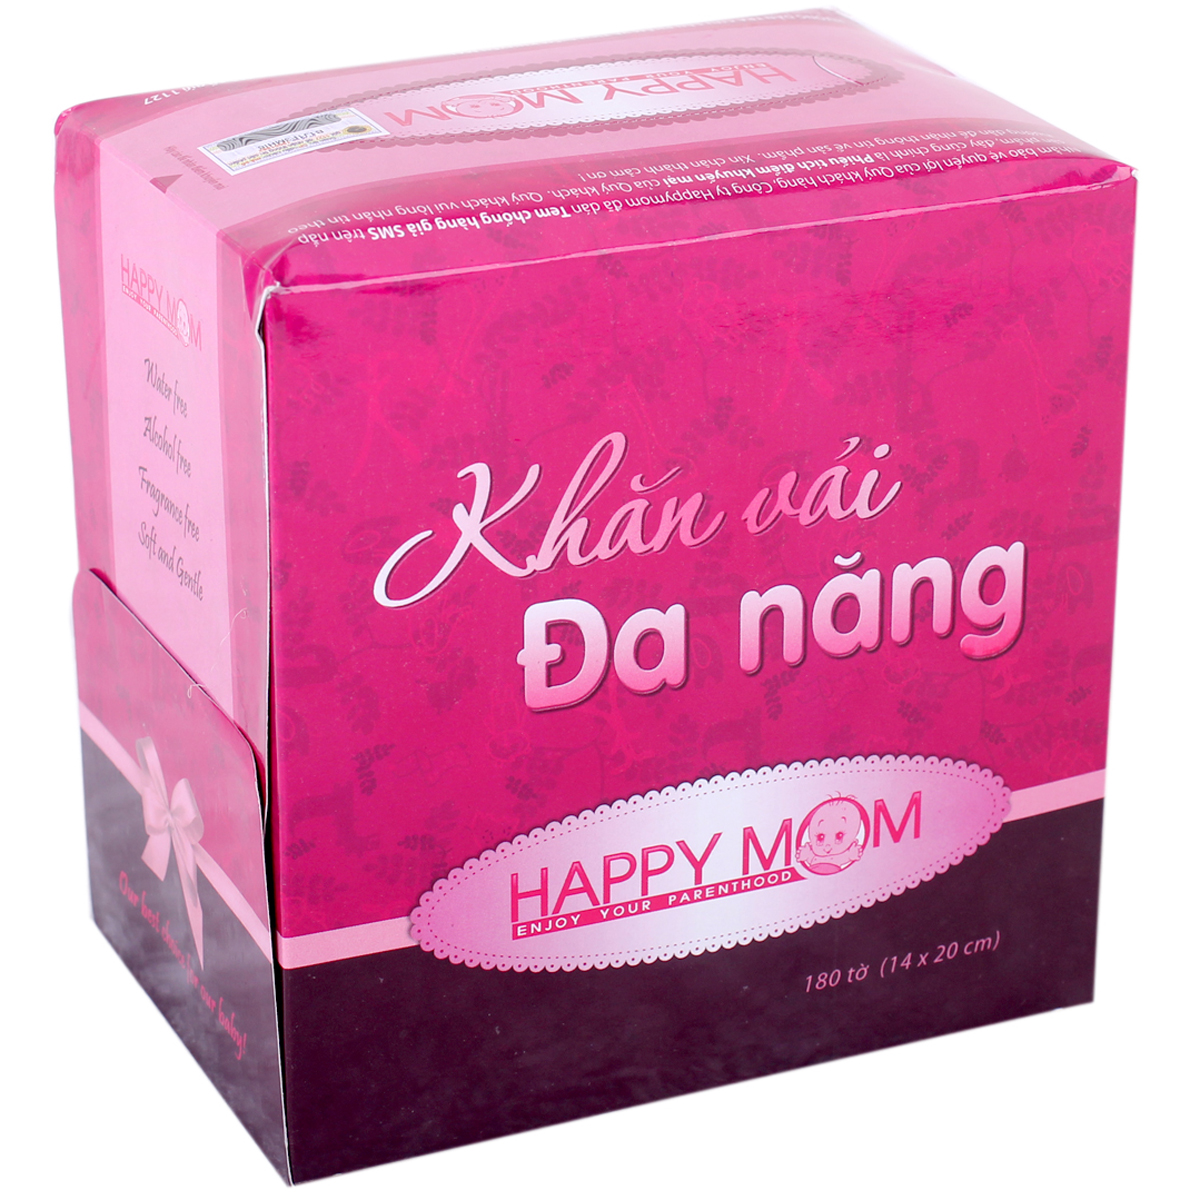 Khan vai da nang Happy Mom